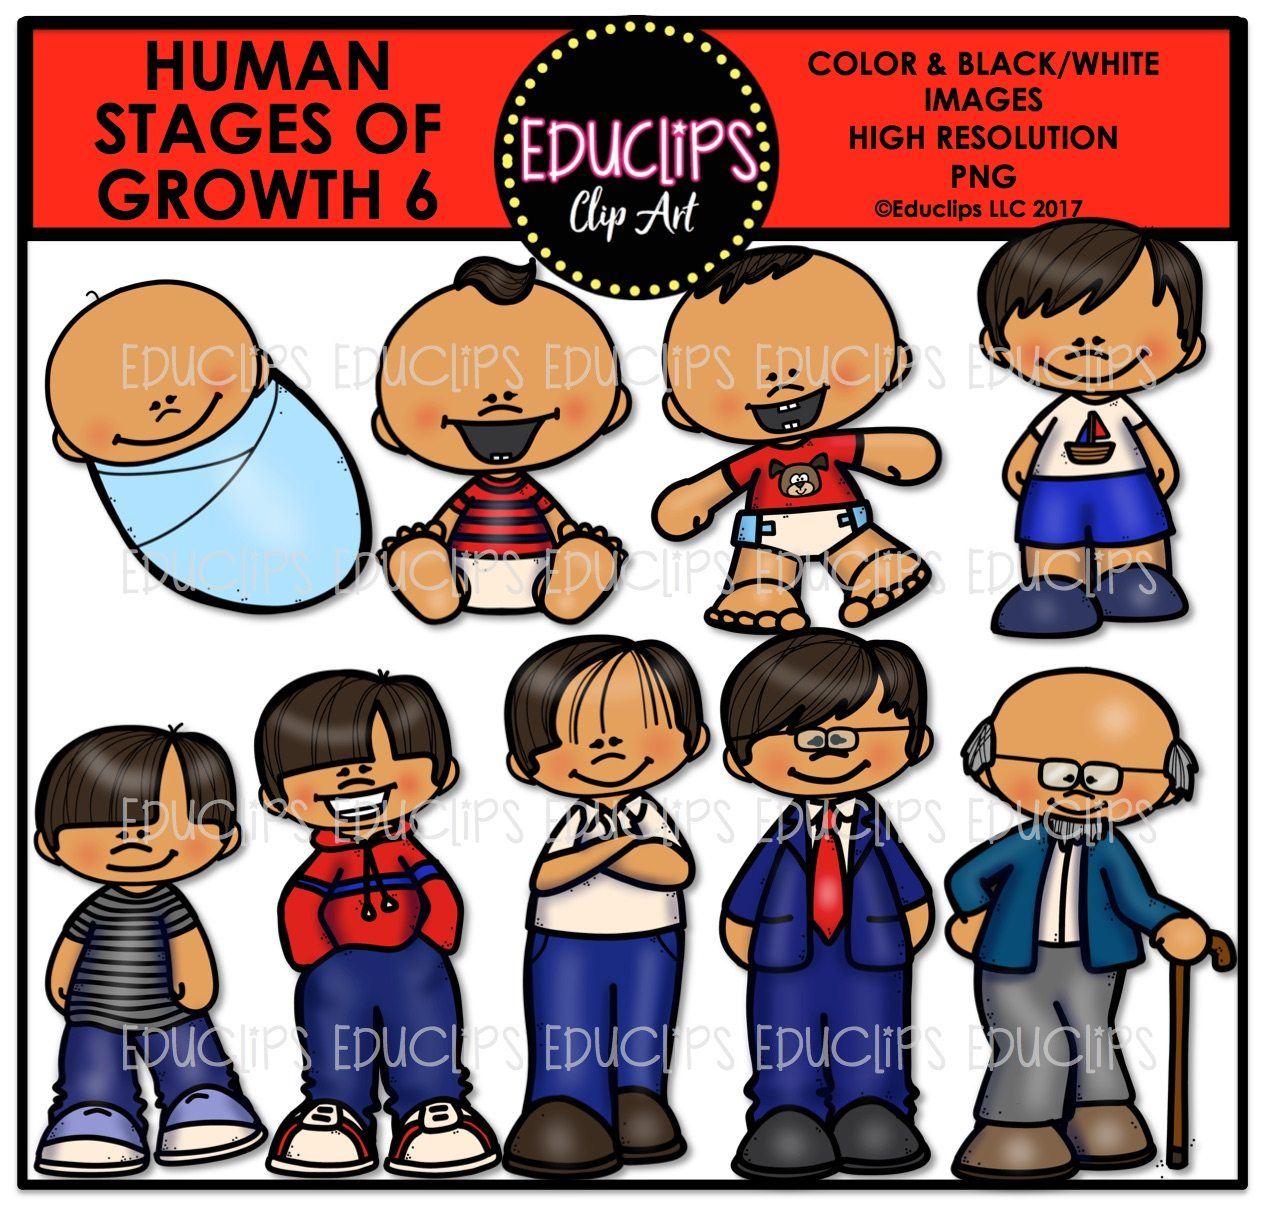 Human Stages Of Growth 6